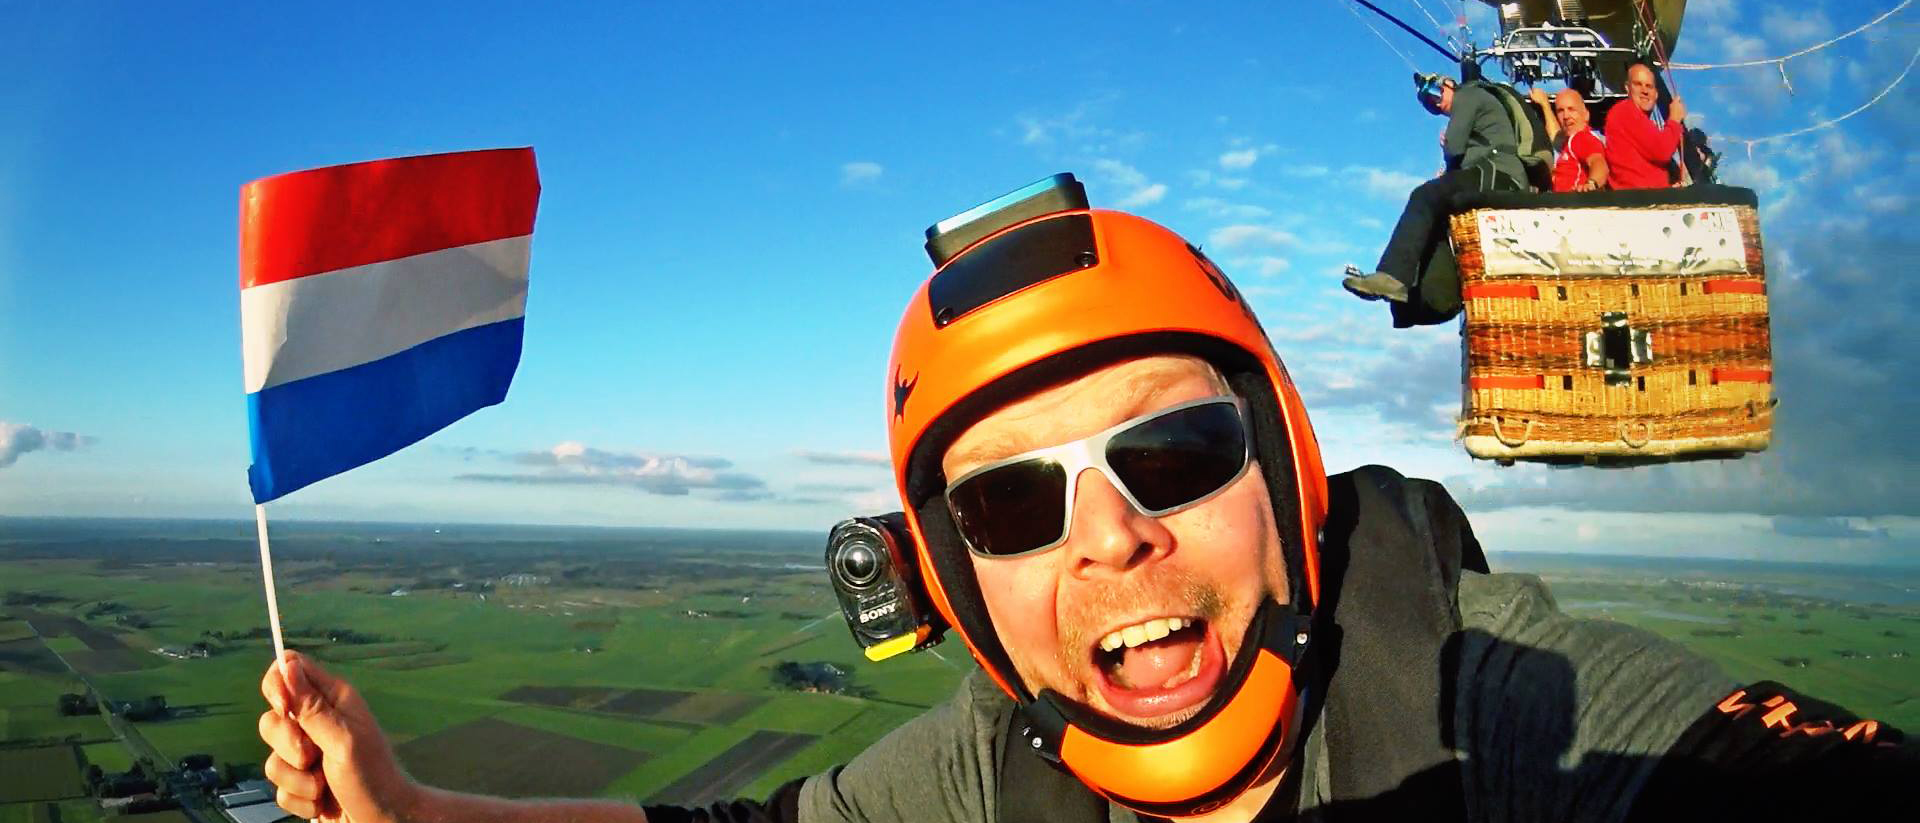 WHY Skydive?